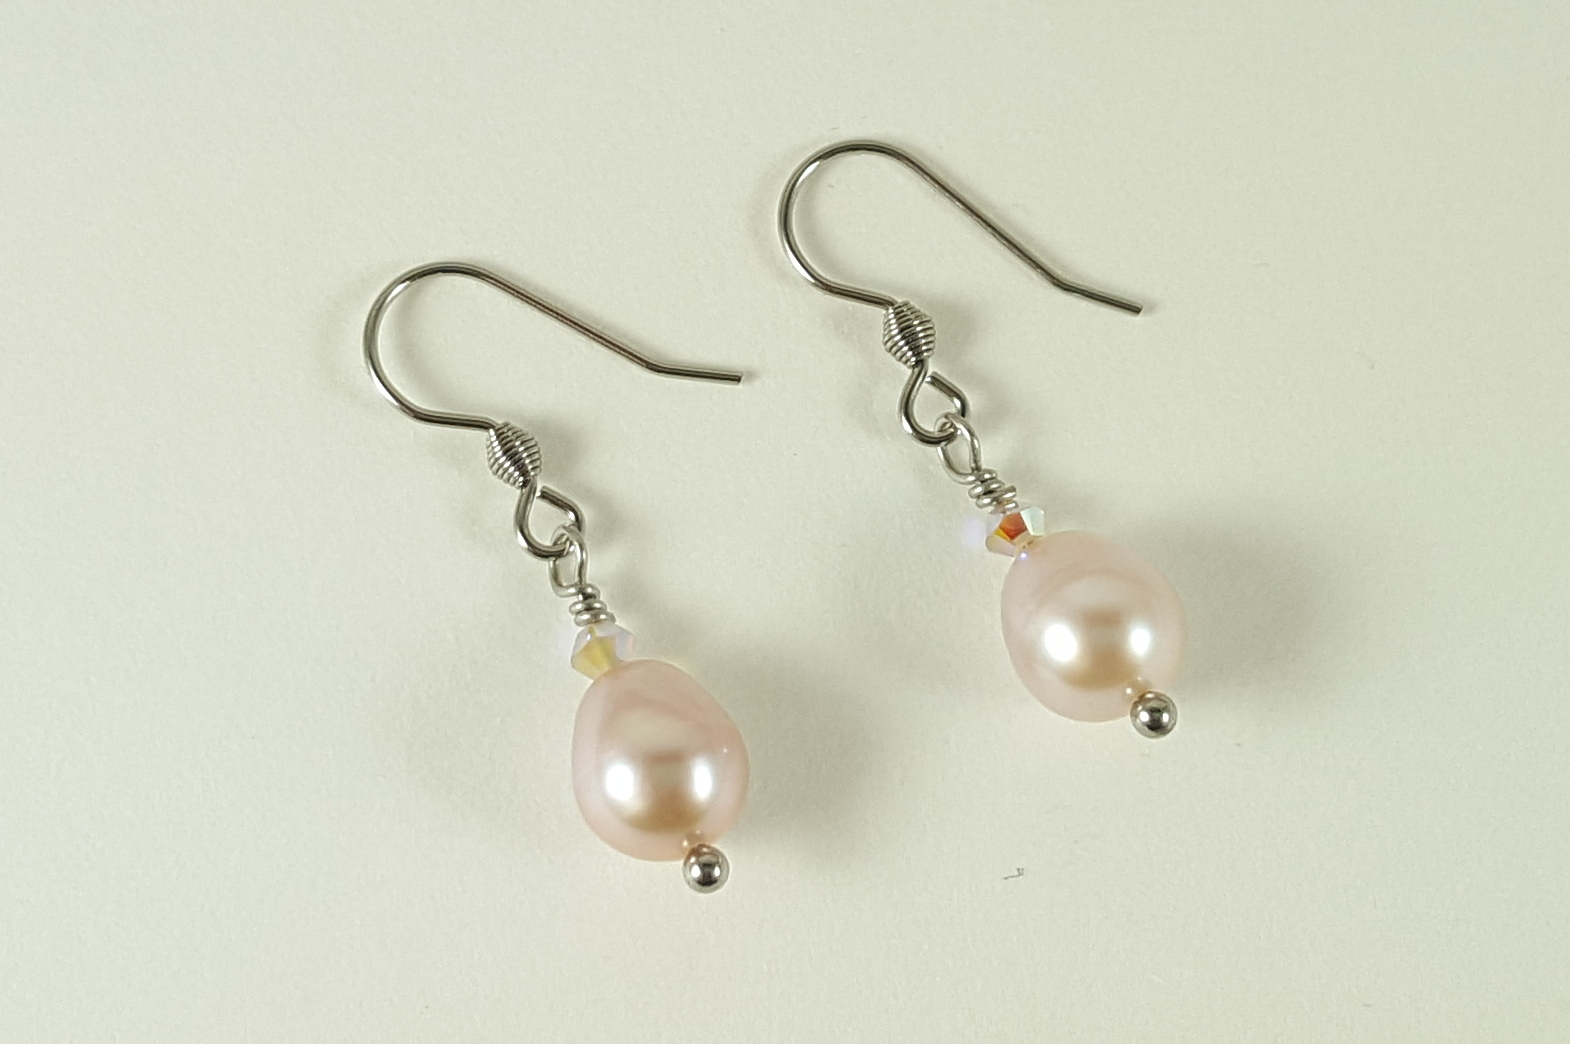 melanie lilac pearl senhoa single earrings uk products